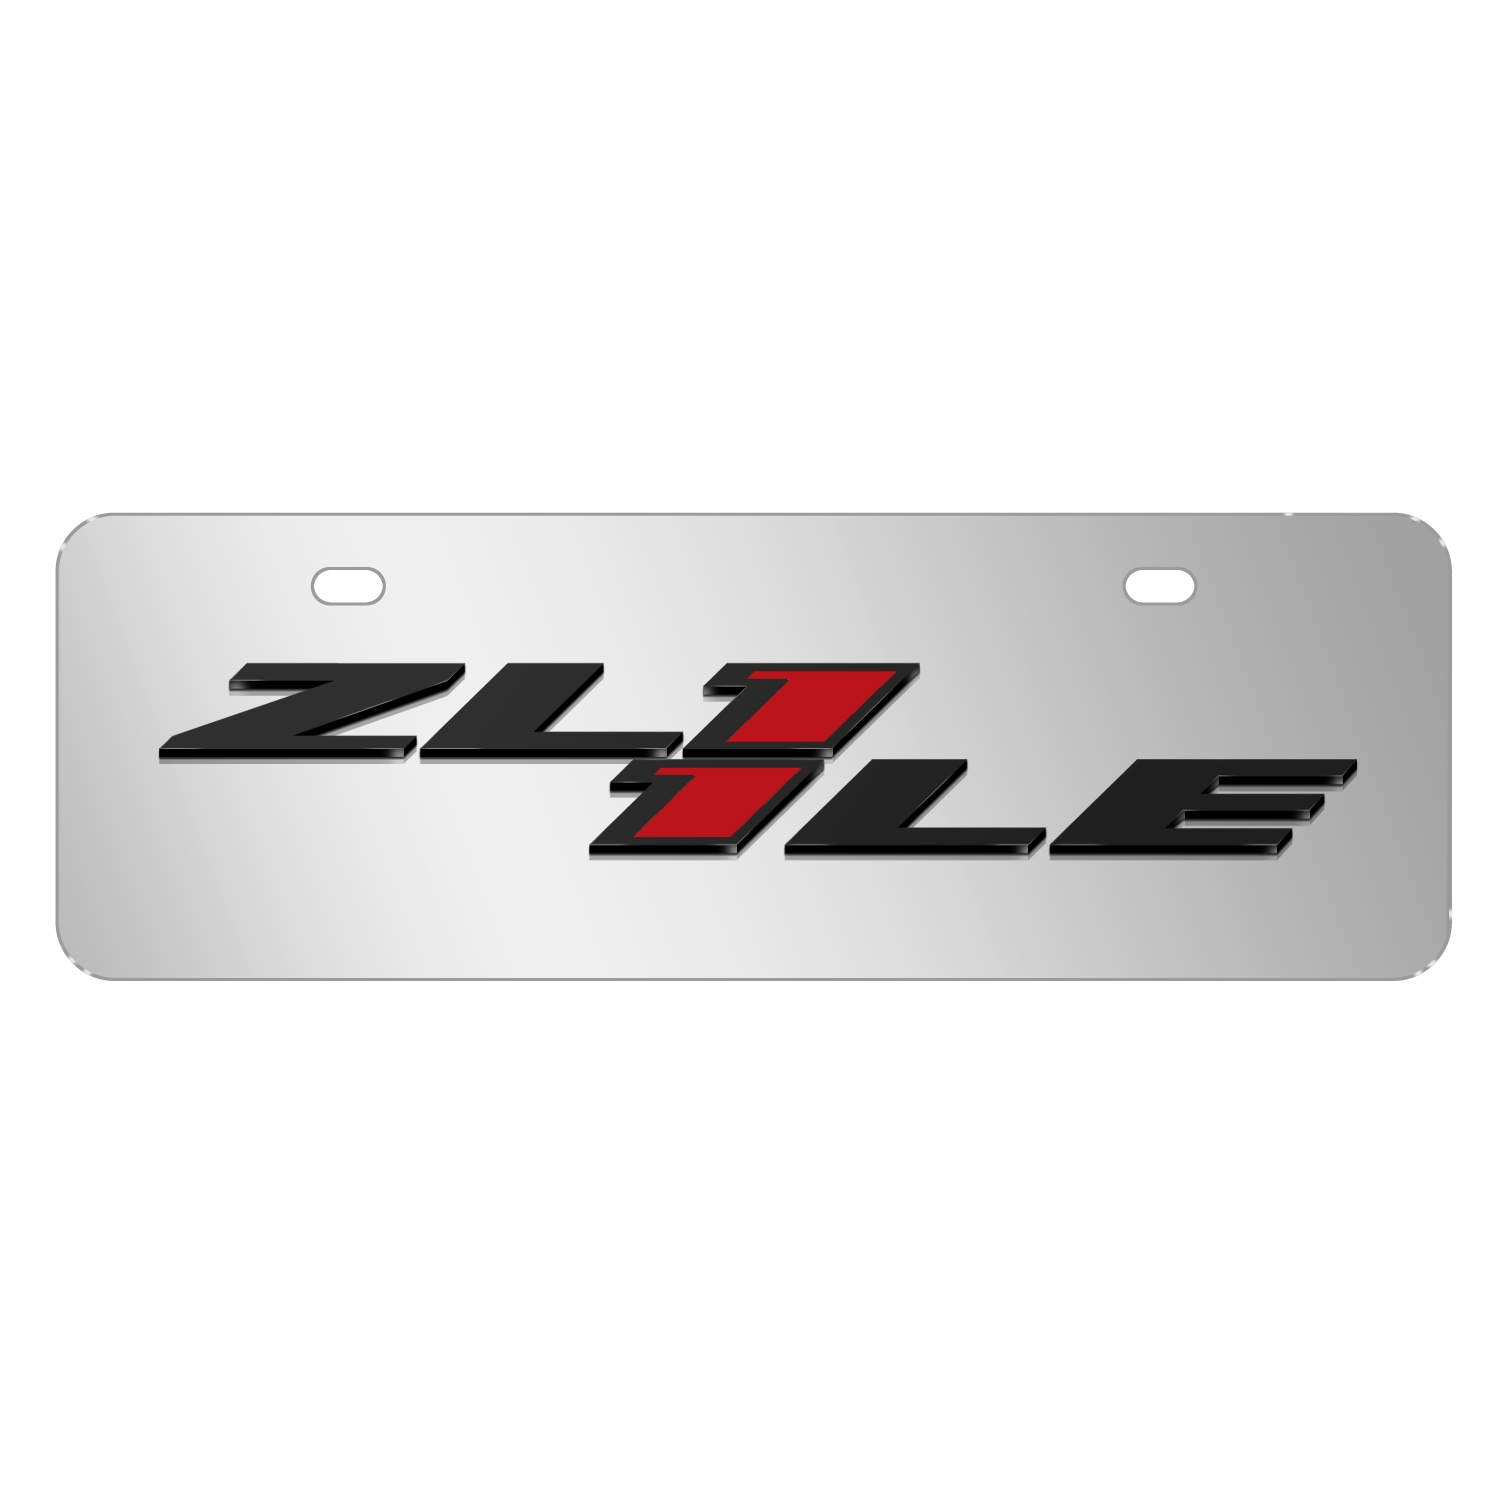 "Chevrolet 2016 Camaro ZL1-1LE 3D Logo Mirror Chrome 12""x4"" Half-Size Stainless Steel License Plate"